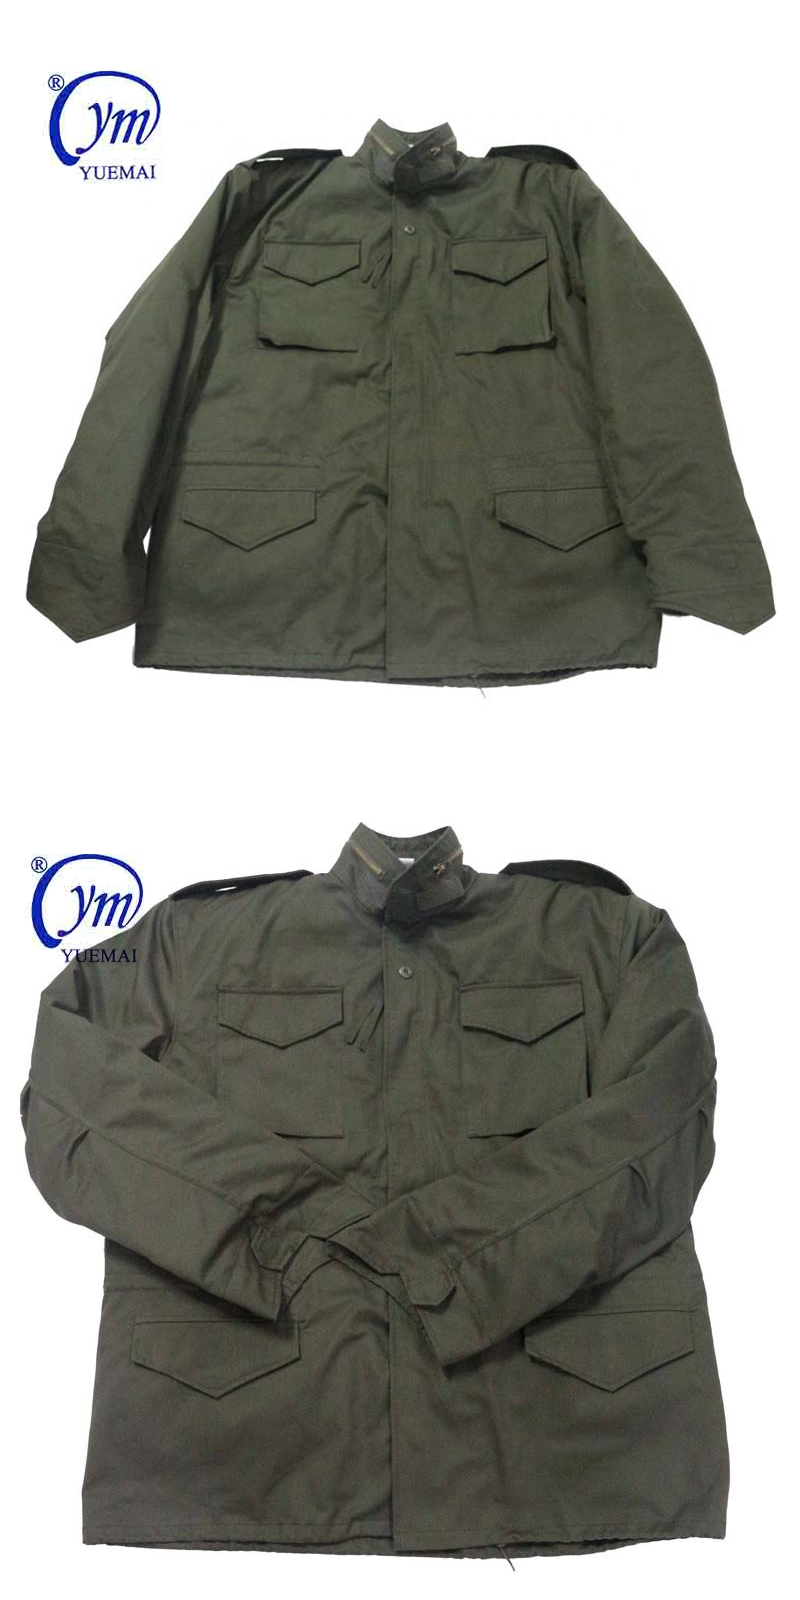 US Military CP Army Uniform M1965 Combat Jacket M65 Field Jacket American